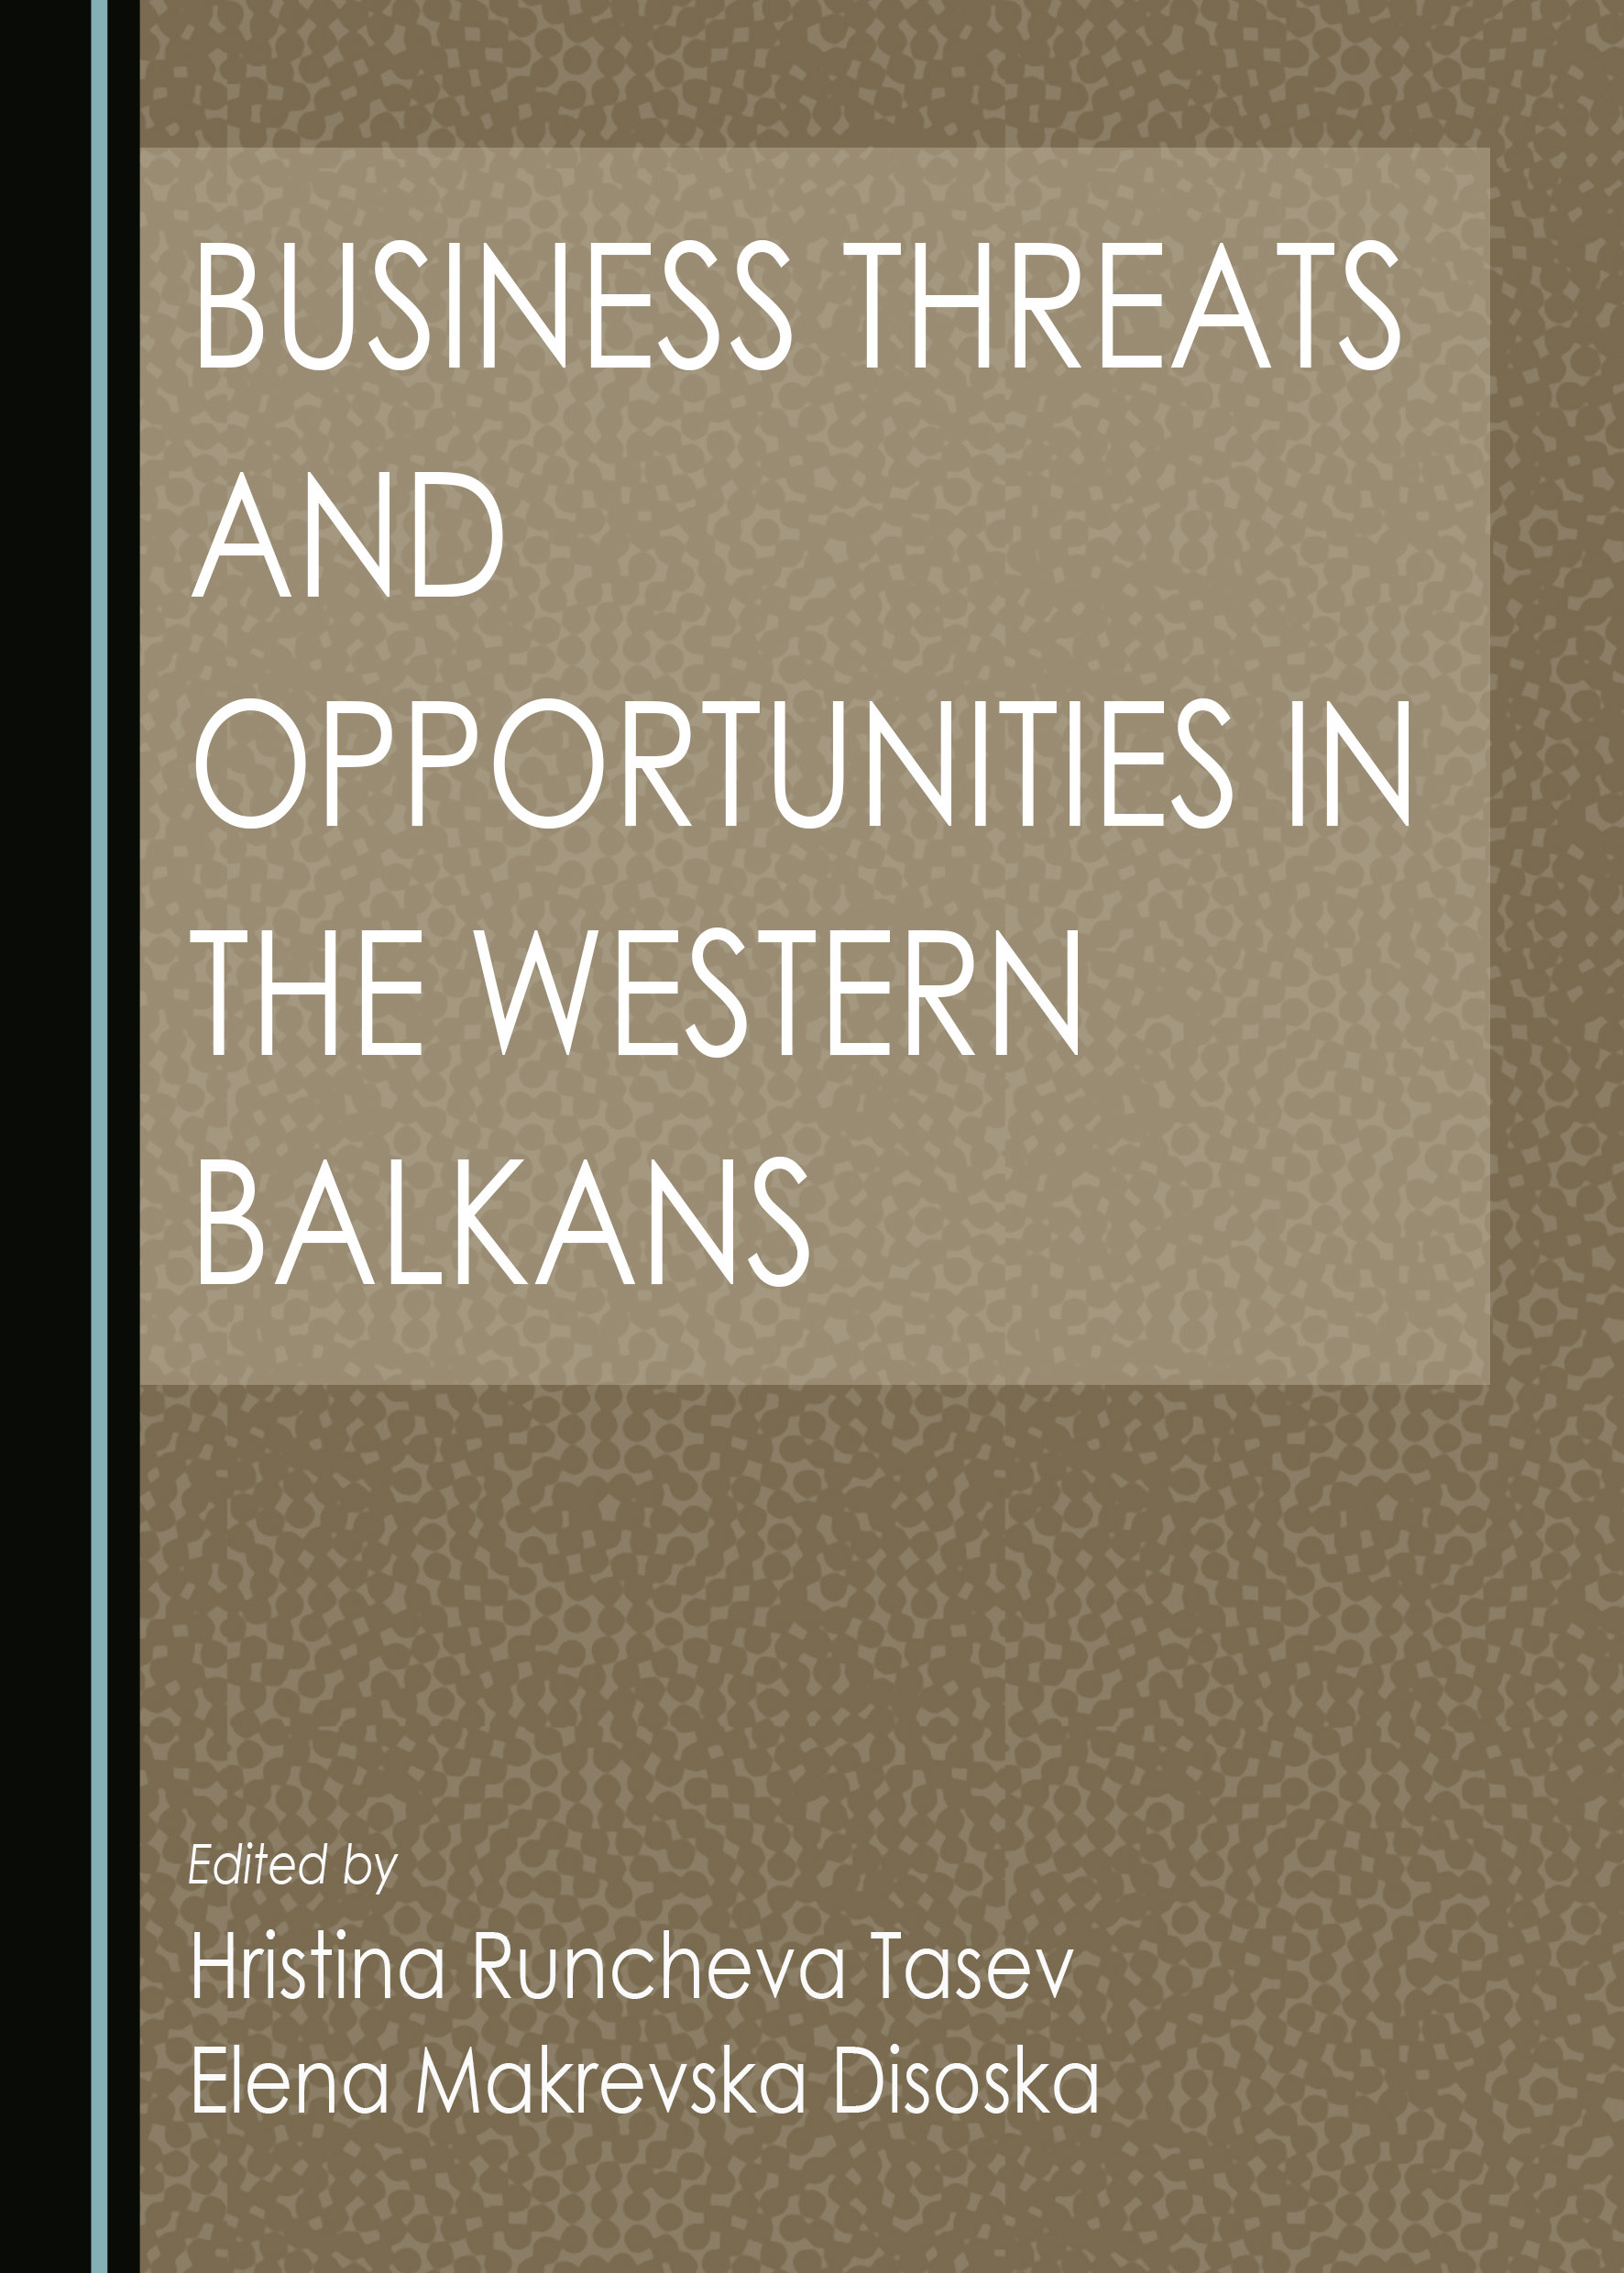 Business Threats and Opportunities in the Western Balkans